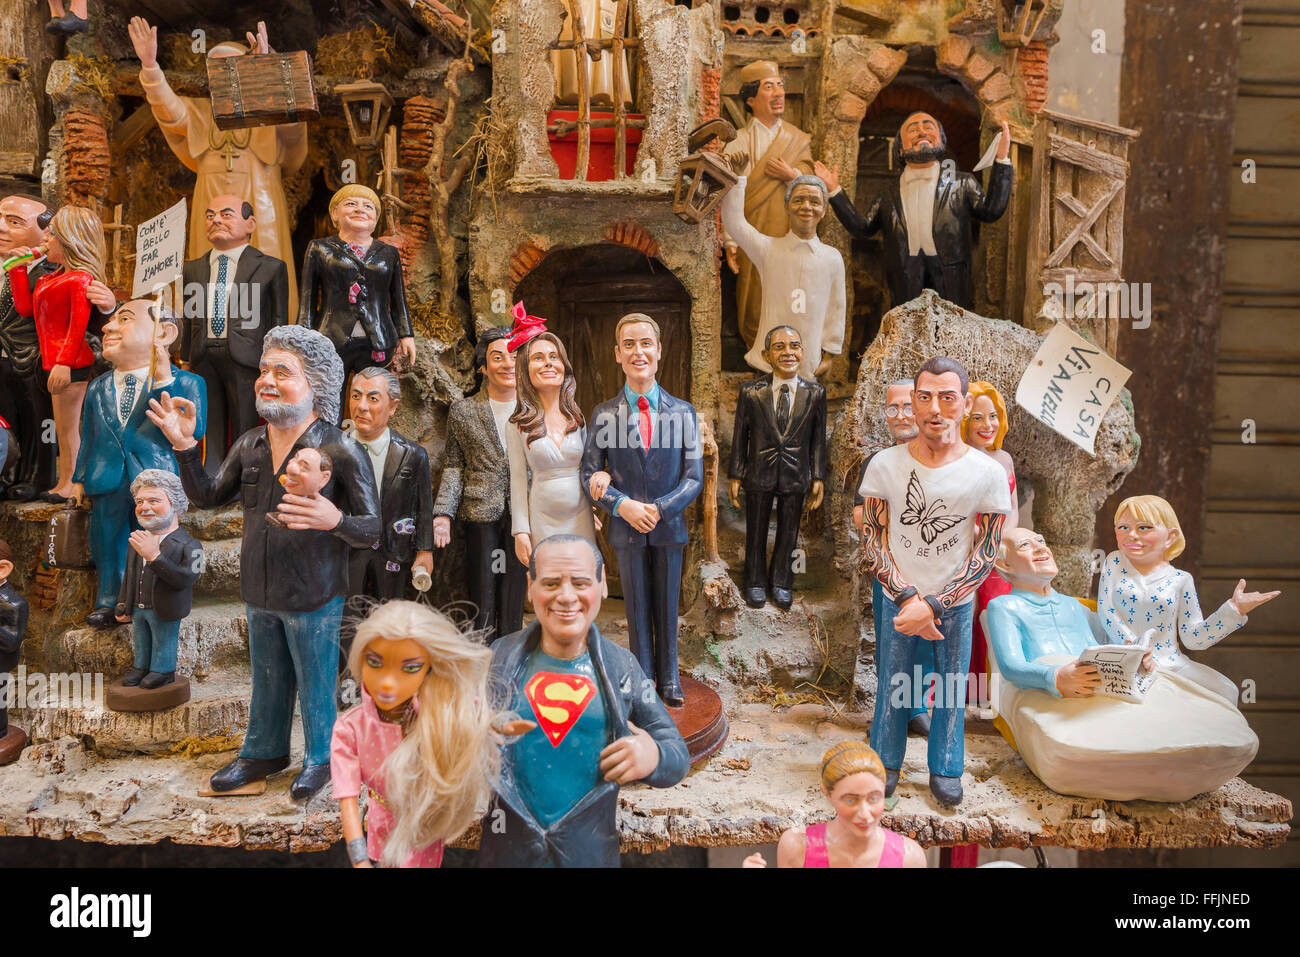 Crib shop Naples, a group of colourful celebrity figurines crafted by artisans in a crib shop in the Via San Gregorio - Stock Image